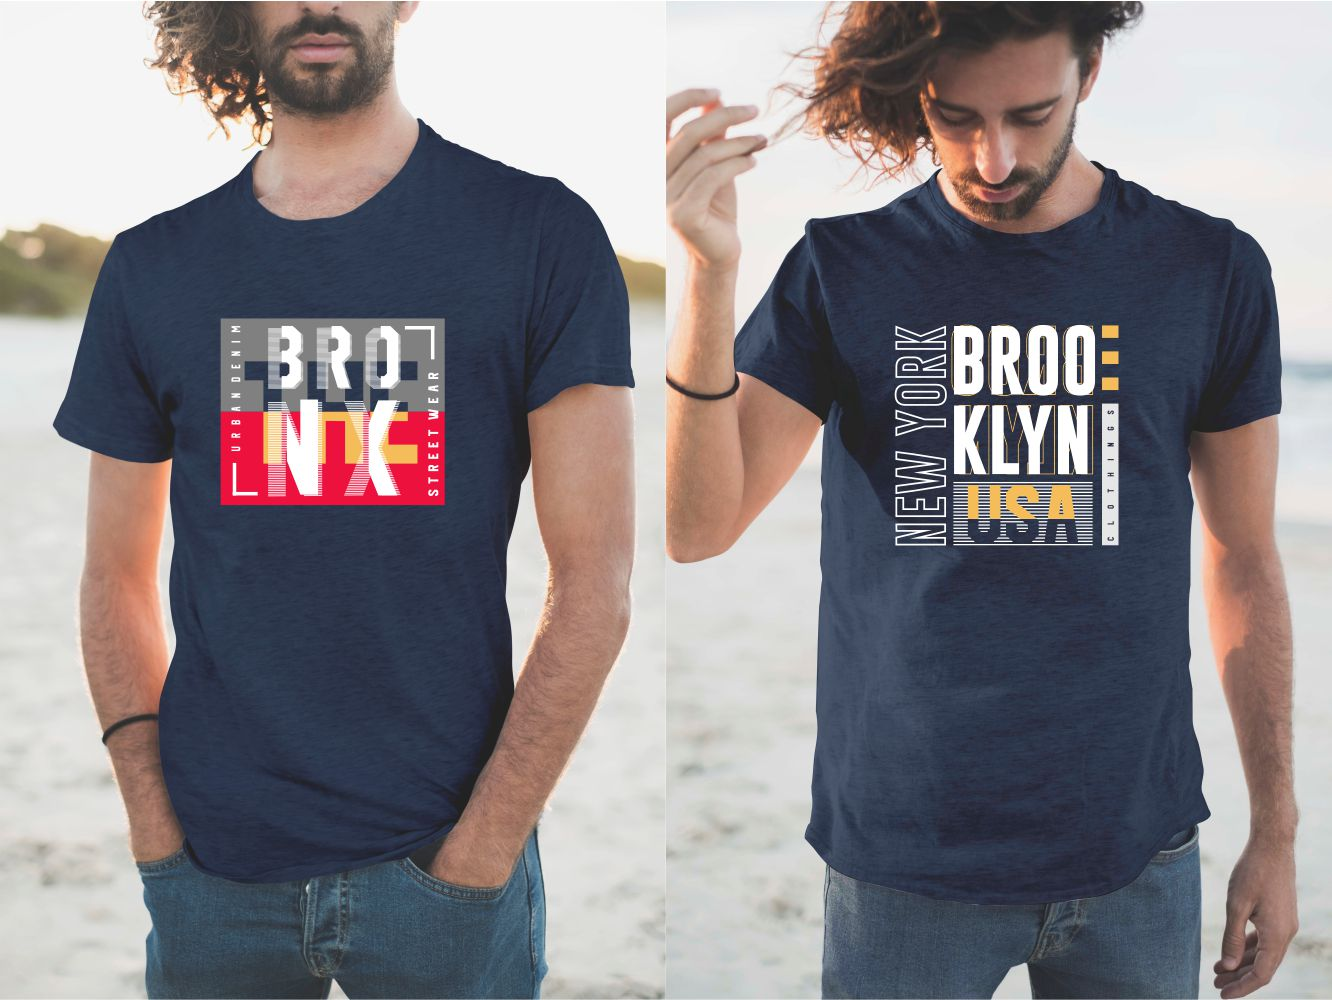 Two navy blue NYC T-shirts.